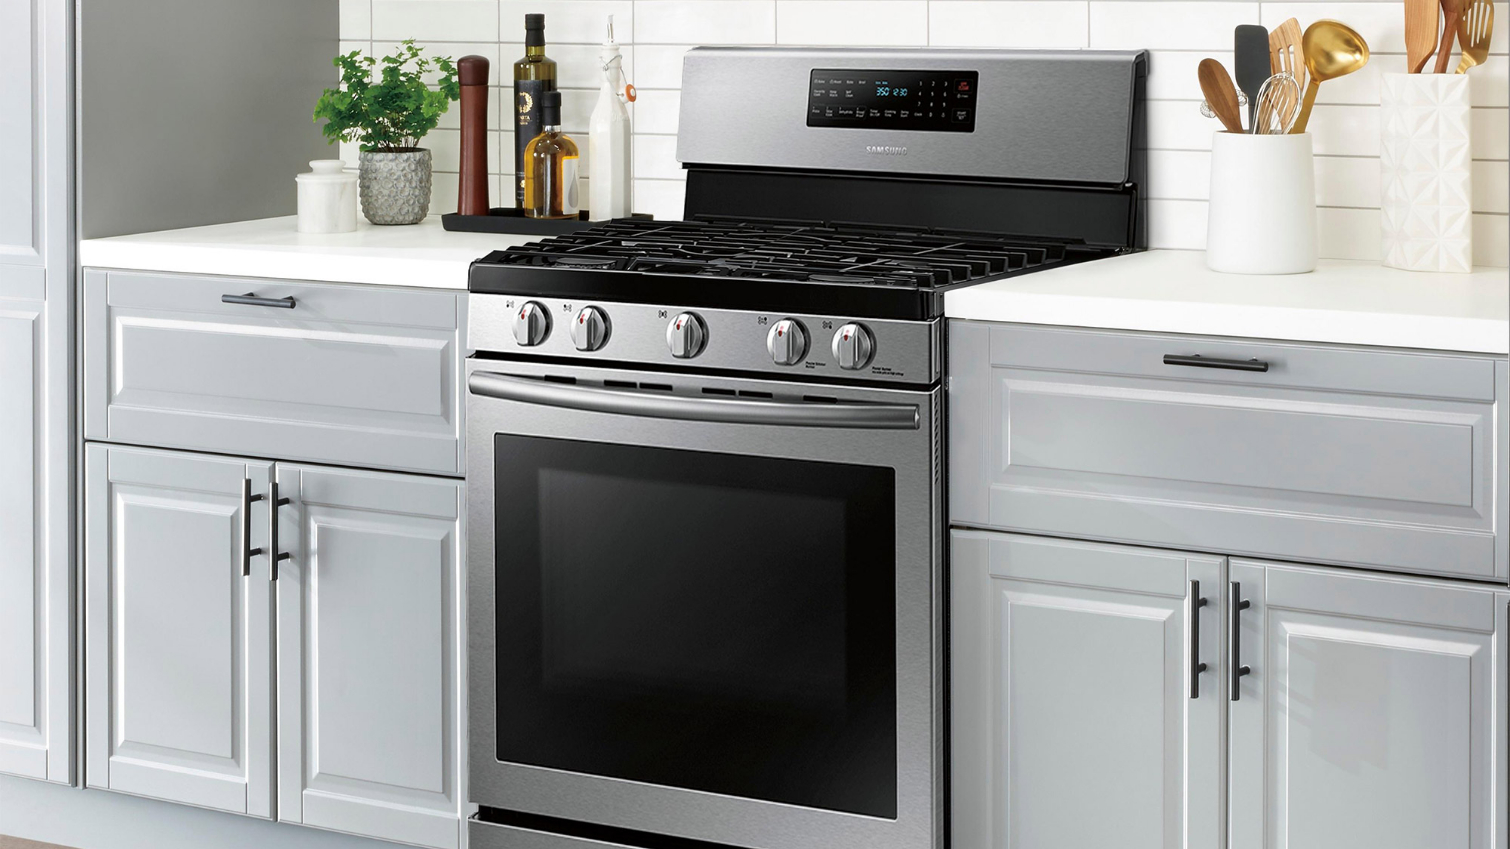 Photo of Gas stove in kitchen of Does a gas oven need a regulator?